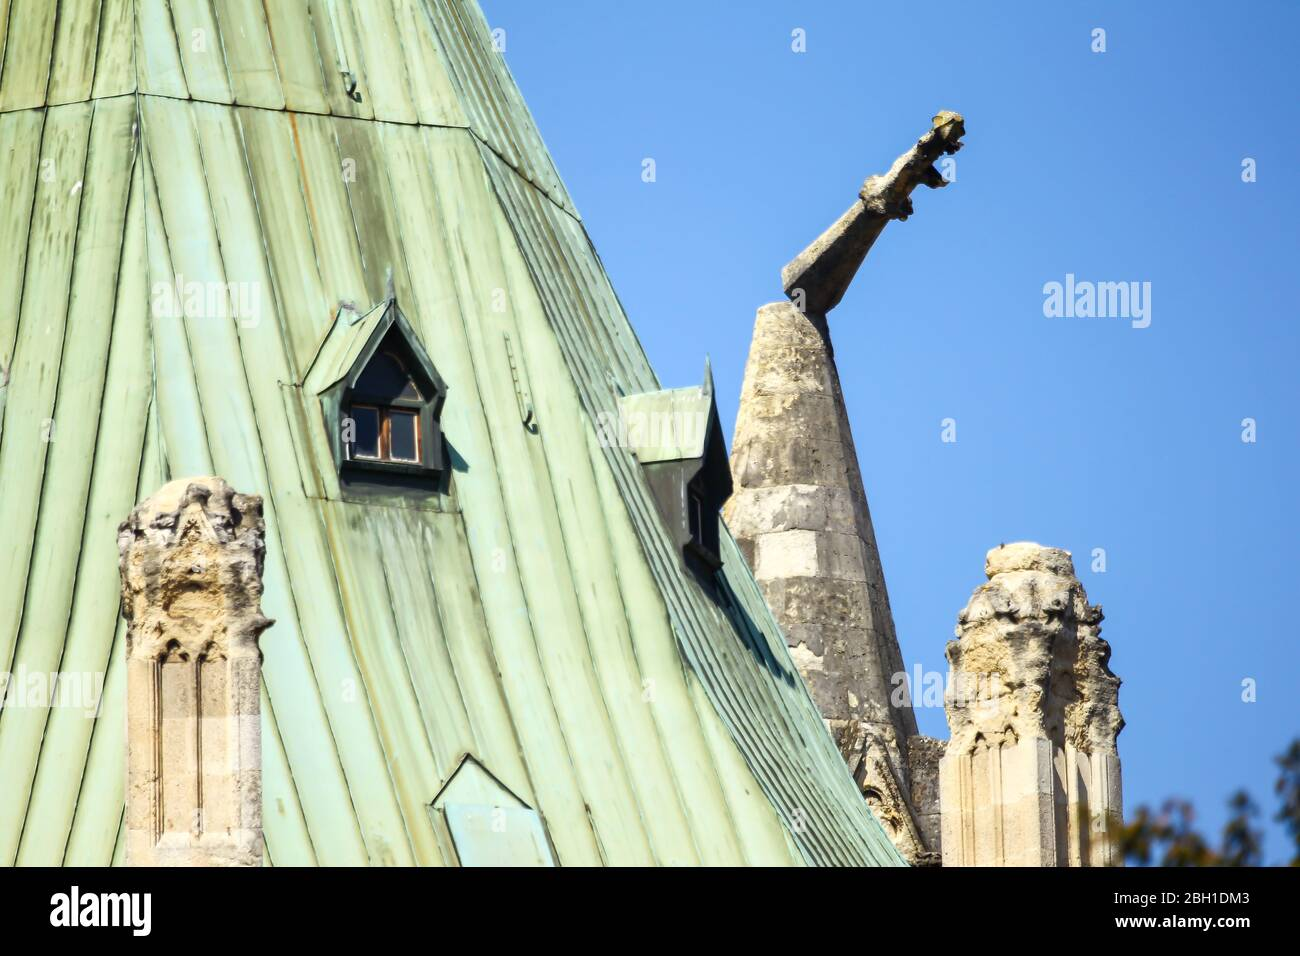 Zagreb Croatia April 17 2020 Damaged Parts Of The Zagreb Cathedral After A Major Earthquake Of 5 5 On The Richter Scale Witch Was On 22 Of March Stock Photo Alamy